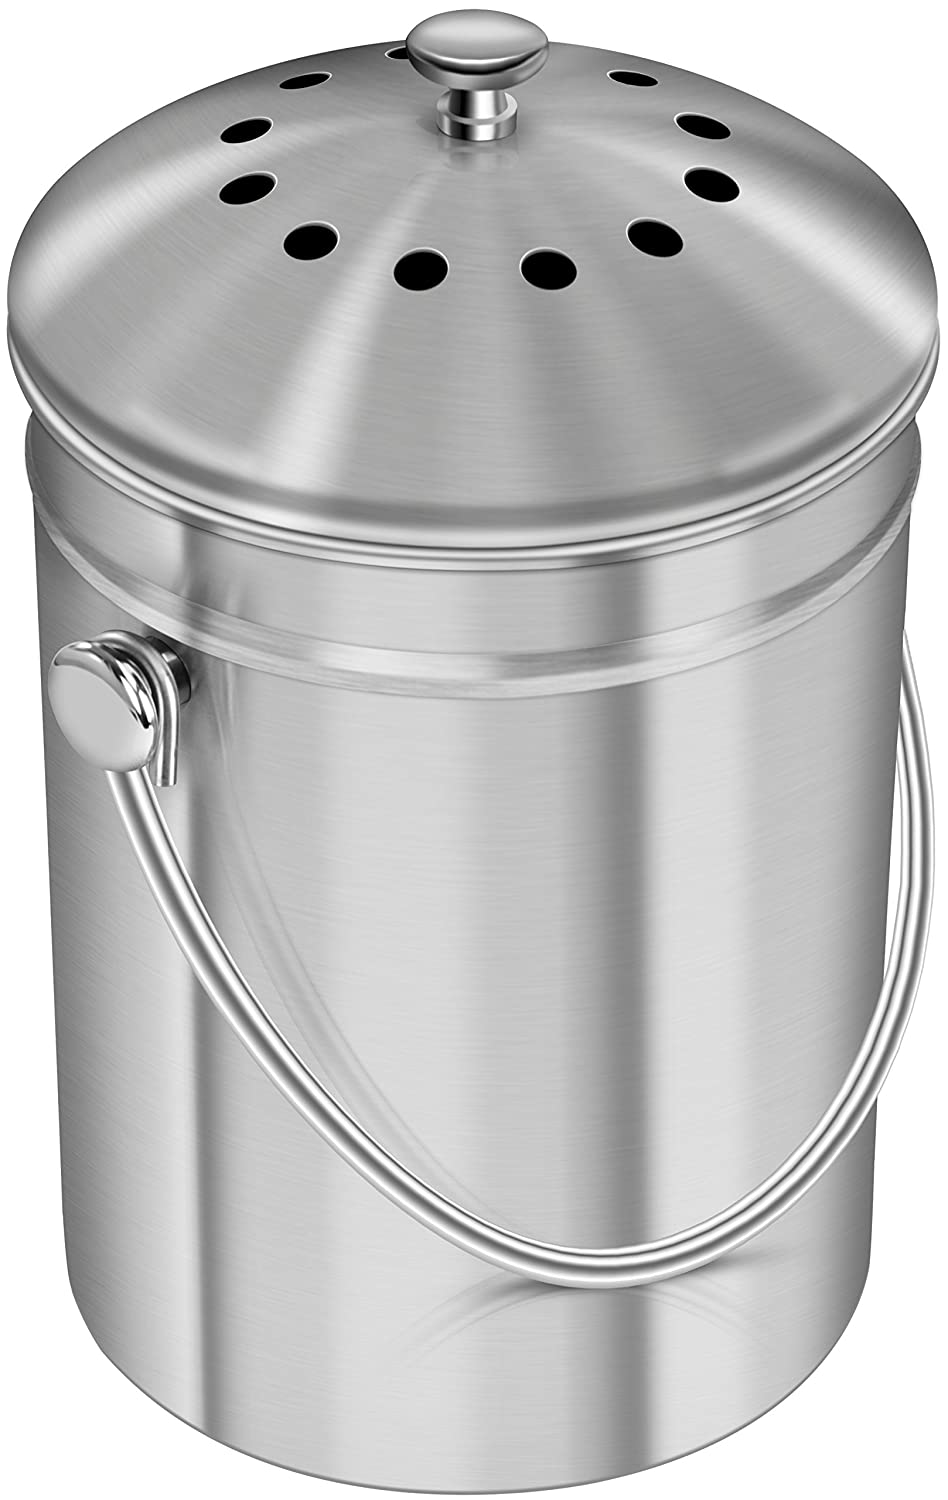 Utopia Kitchen Stainless Steel Compost Bin for Kitchen Countertop - 1.3 Gallon Compost Bucket Kitchen Pail Compost with Lid